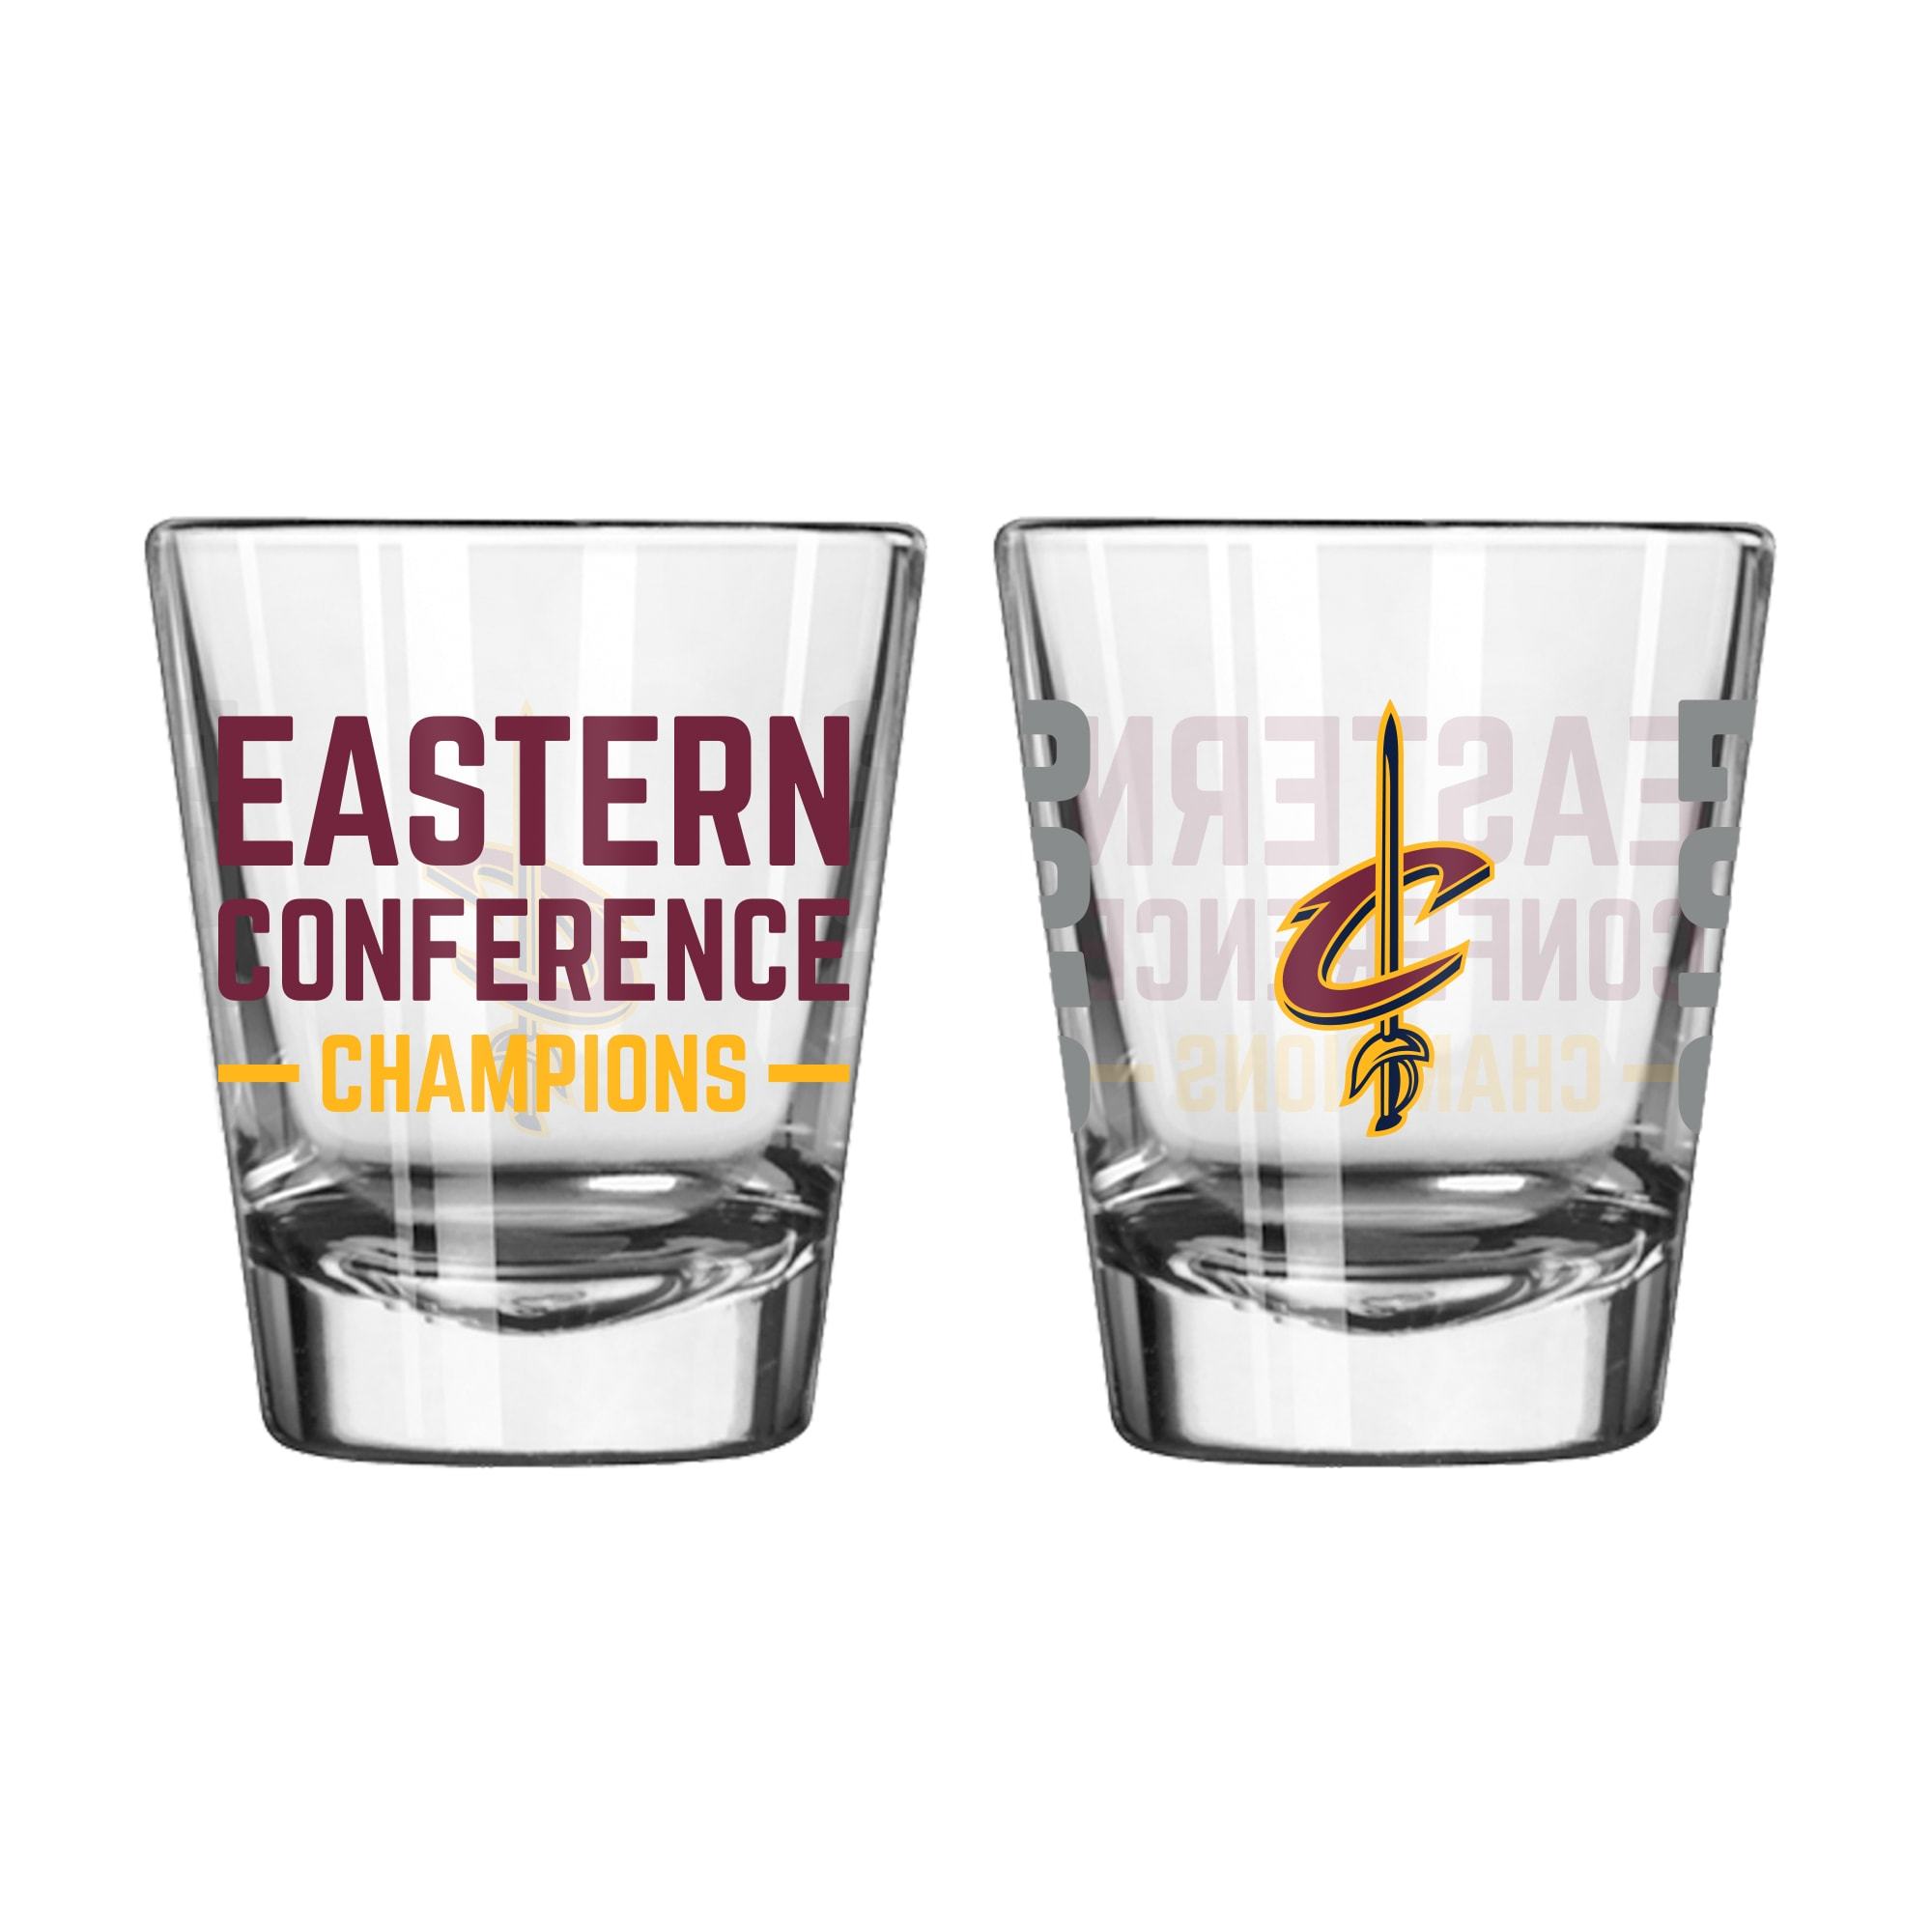 Cleveland Cavaliers 2018 Eastern Conference Champions 2oz. Shot Glass